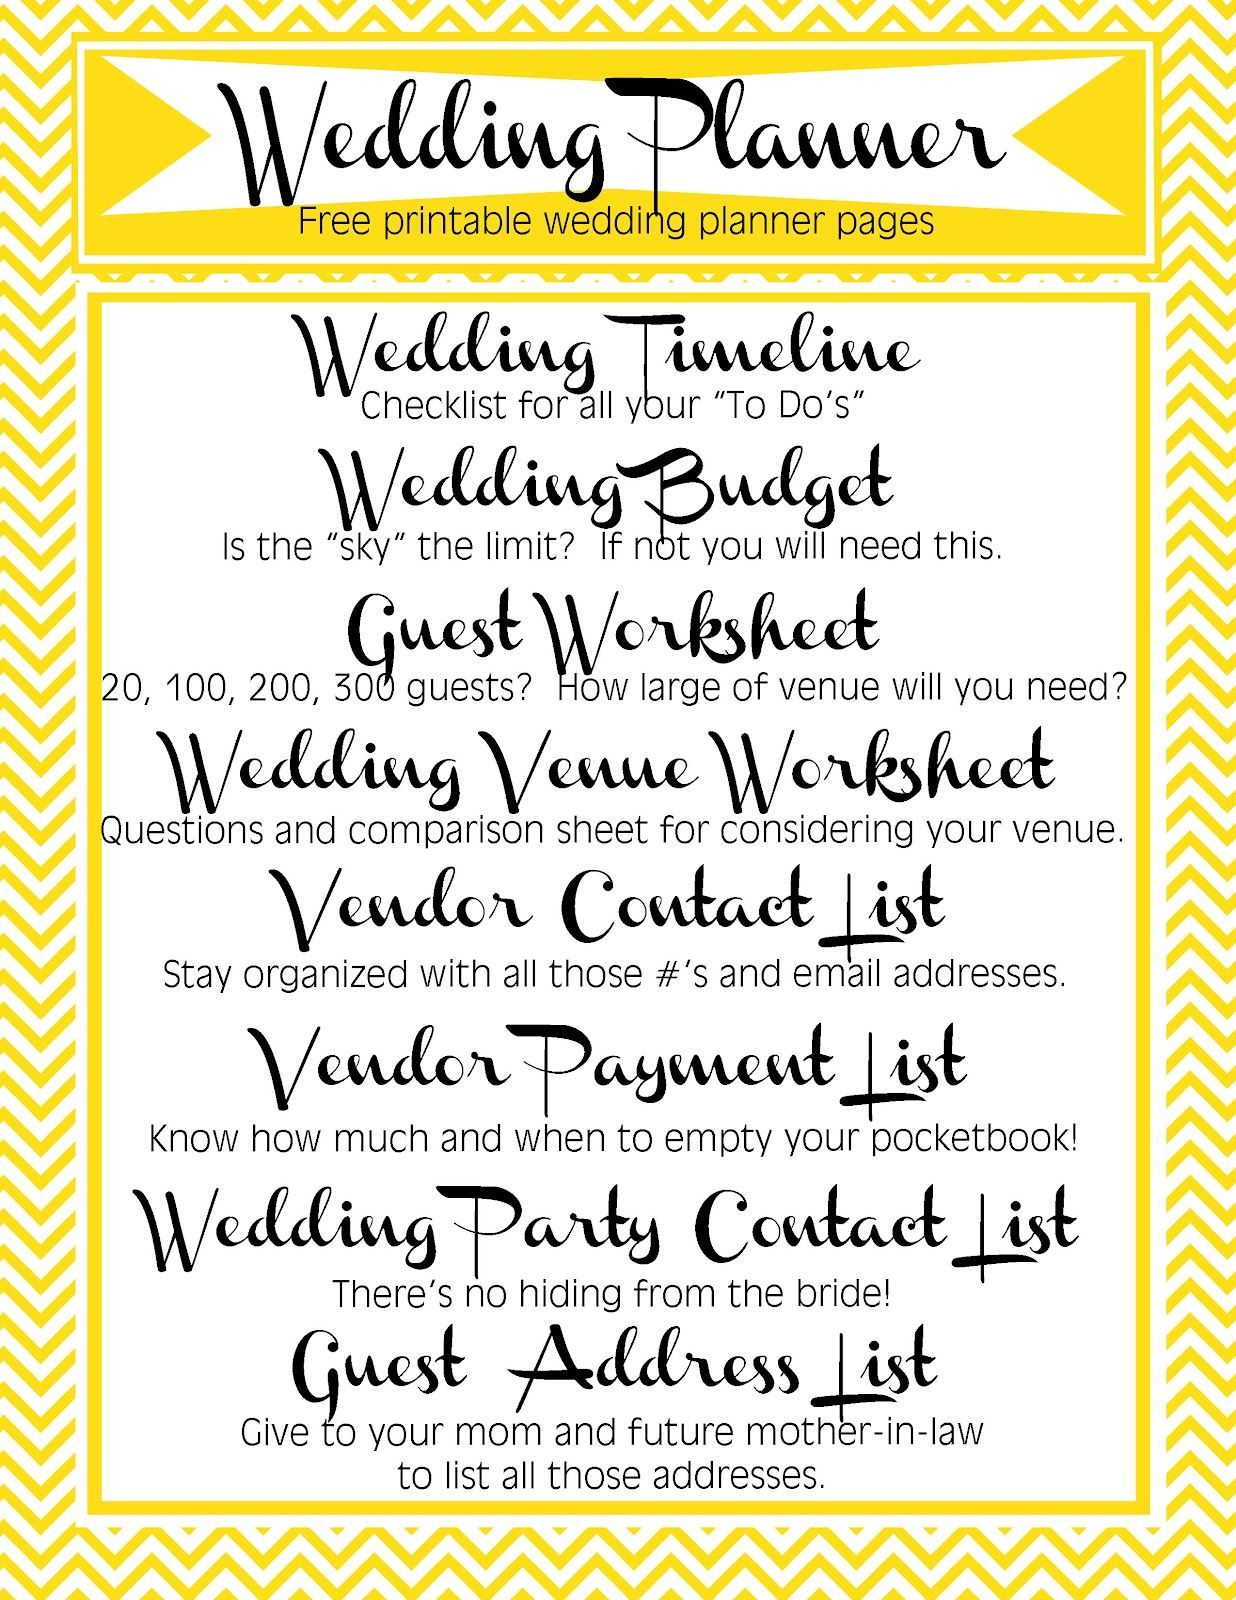 Free Printable Wedding Planner Includes Timeline Budget Guest Worksheet Used To Determine Size